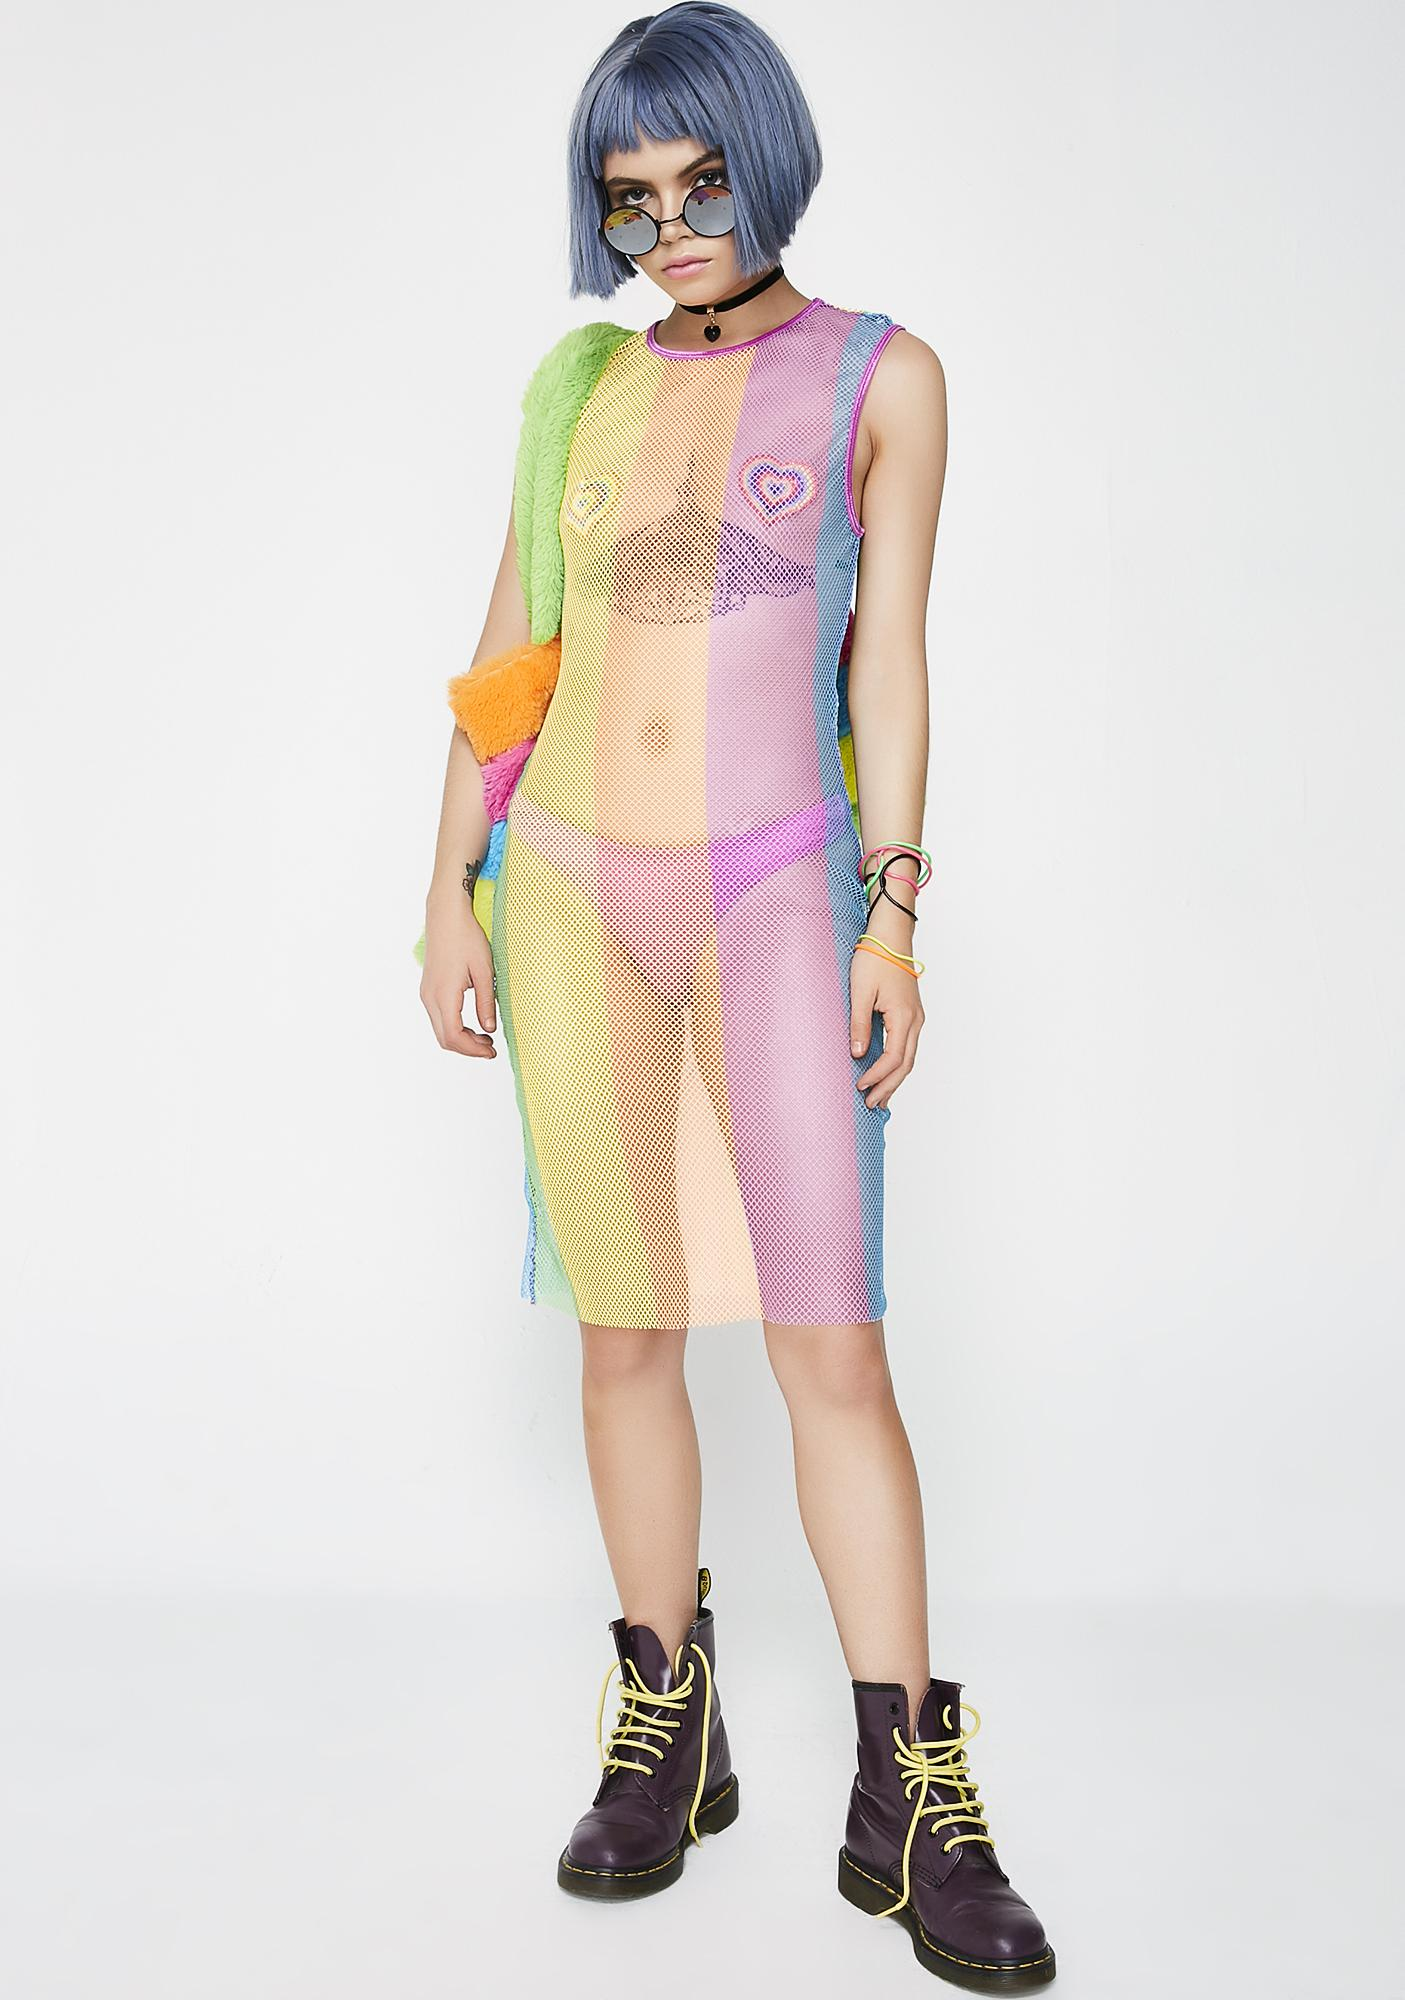 Current Mood Chroma Visions Sheer Dress